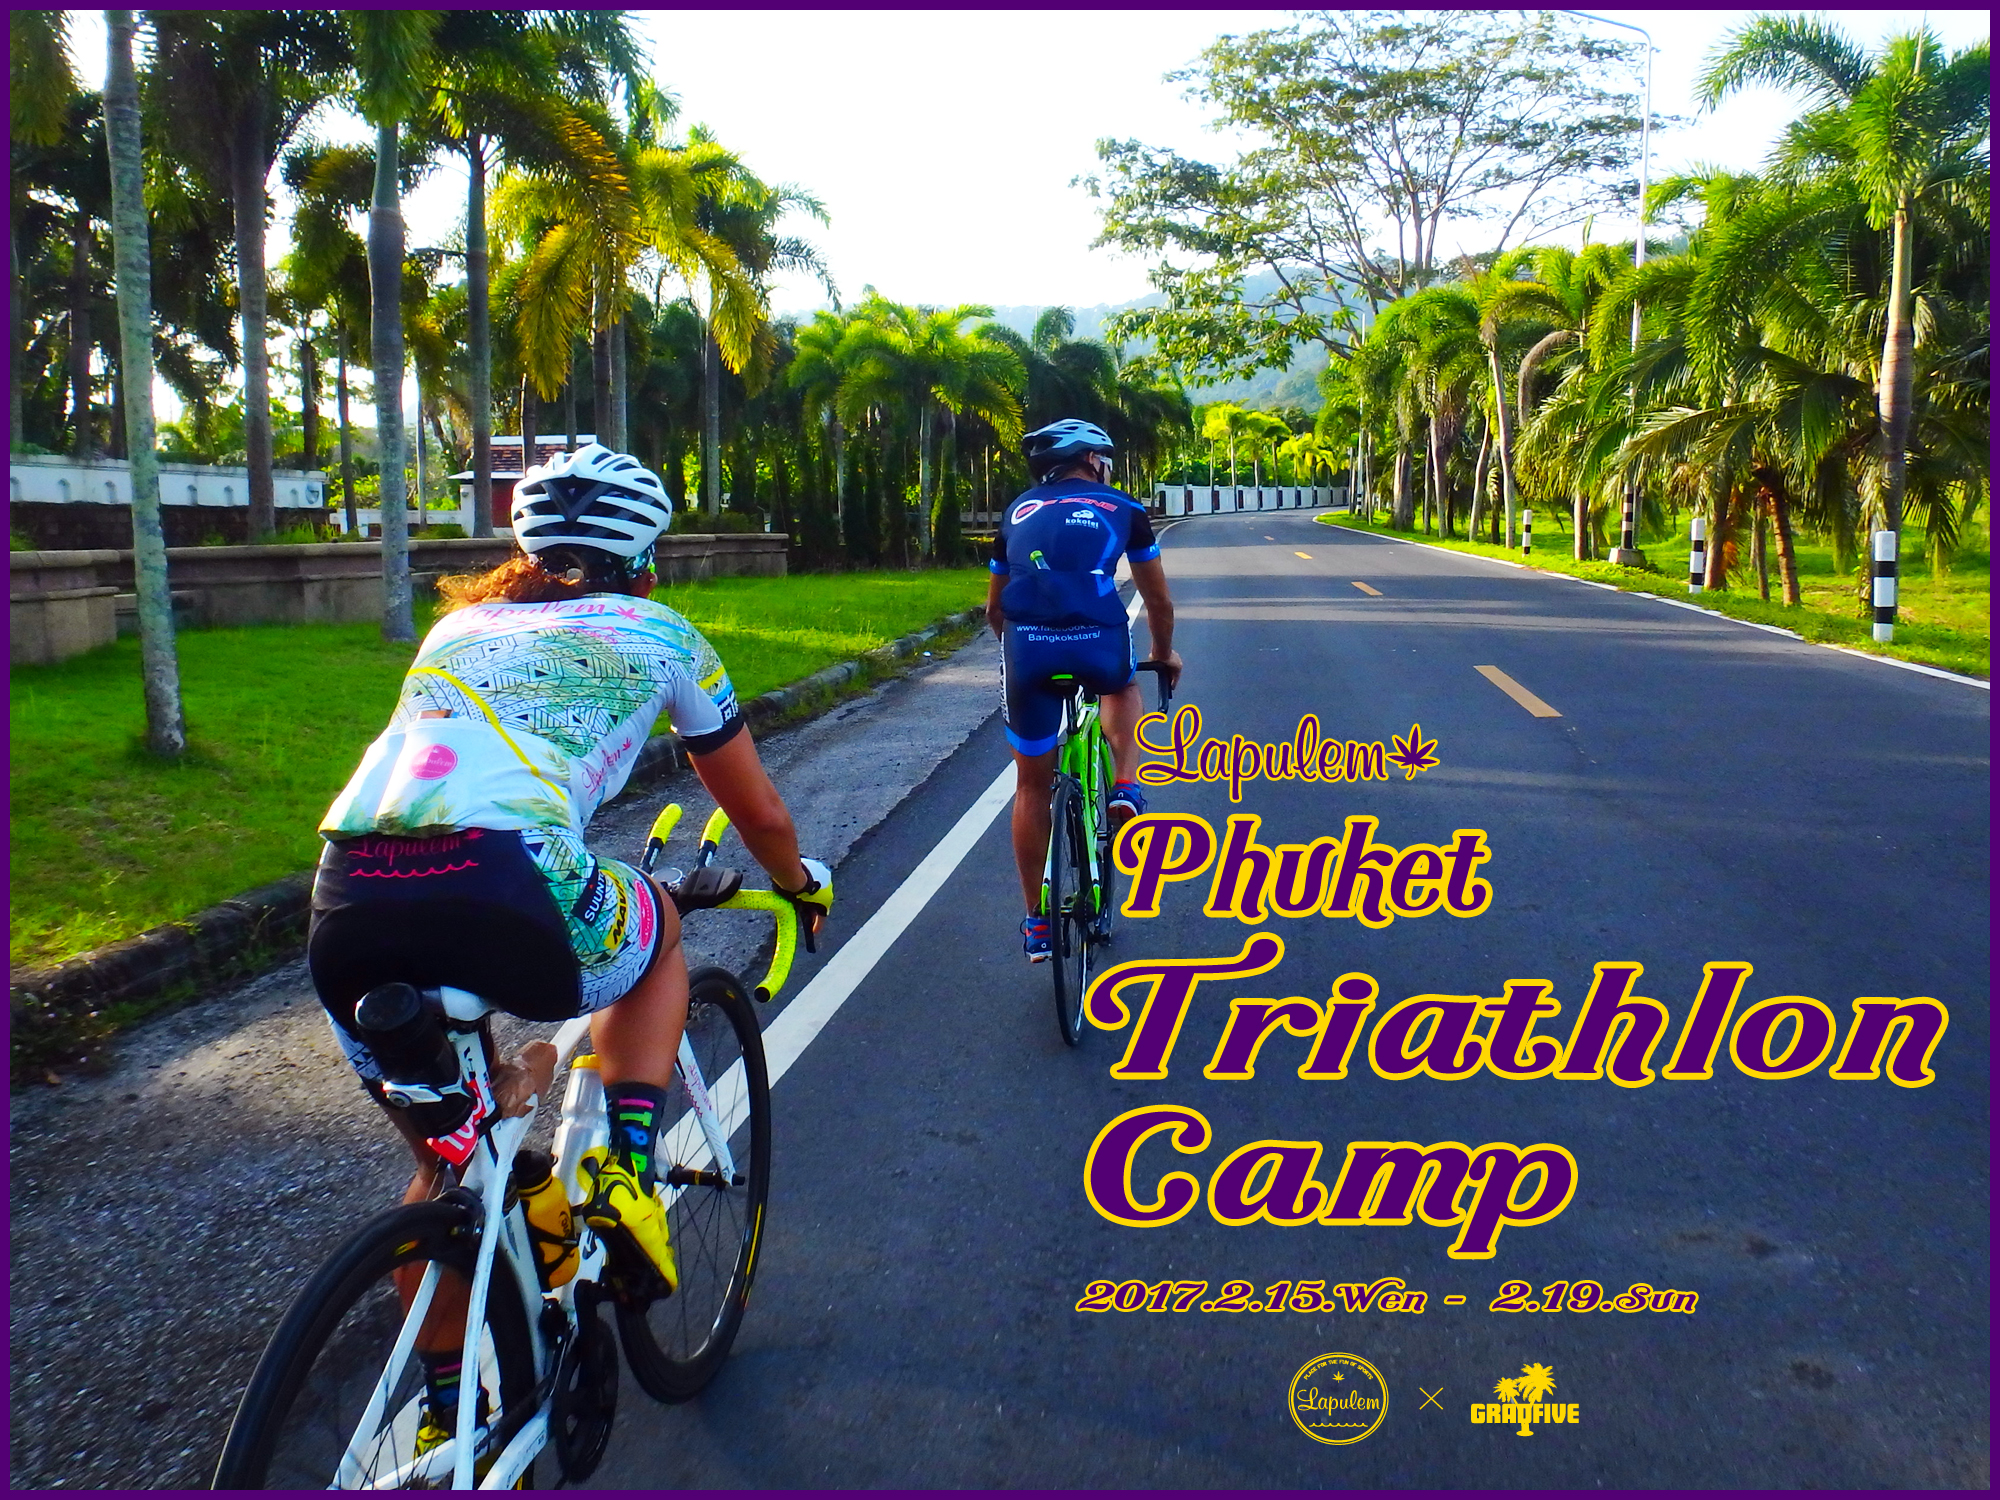 Lapulem TRIATHLON CAMP in プーケット